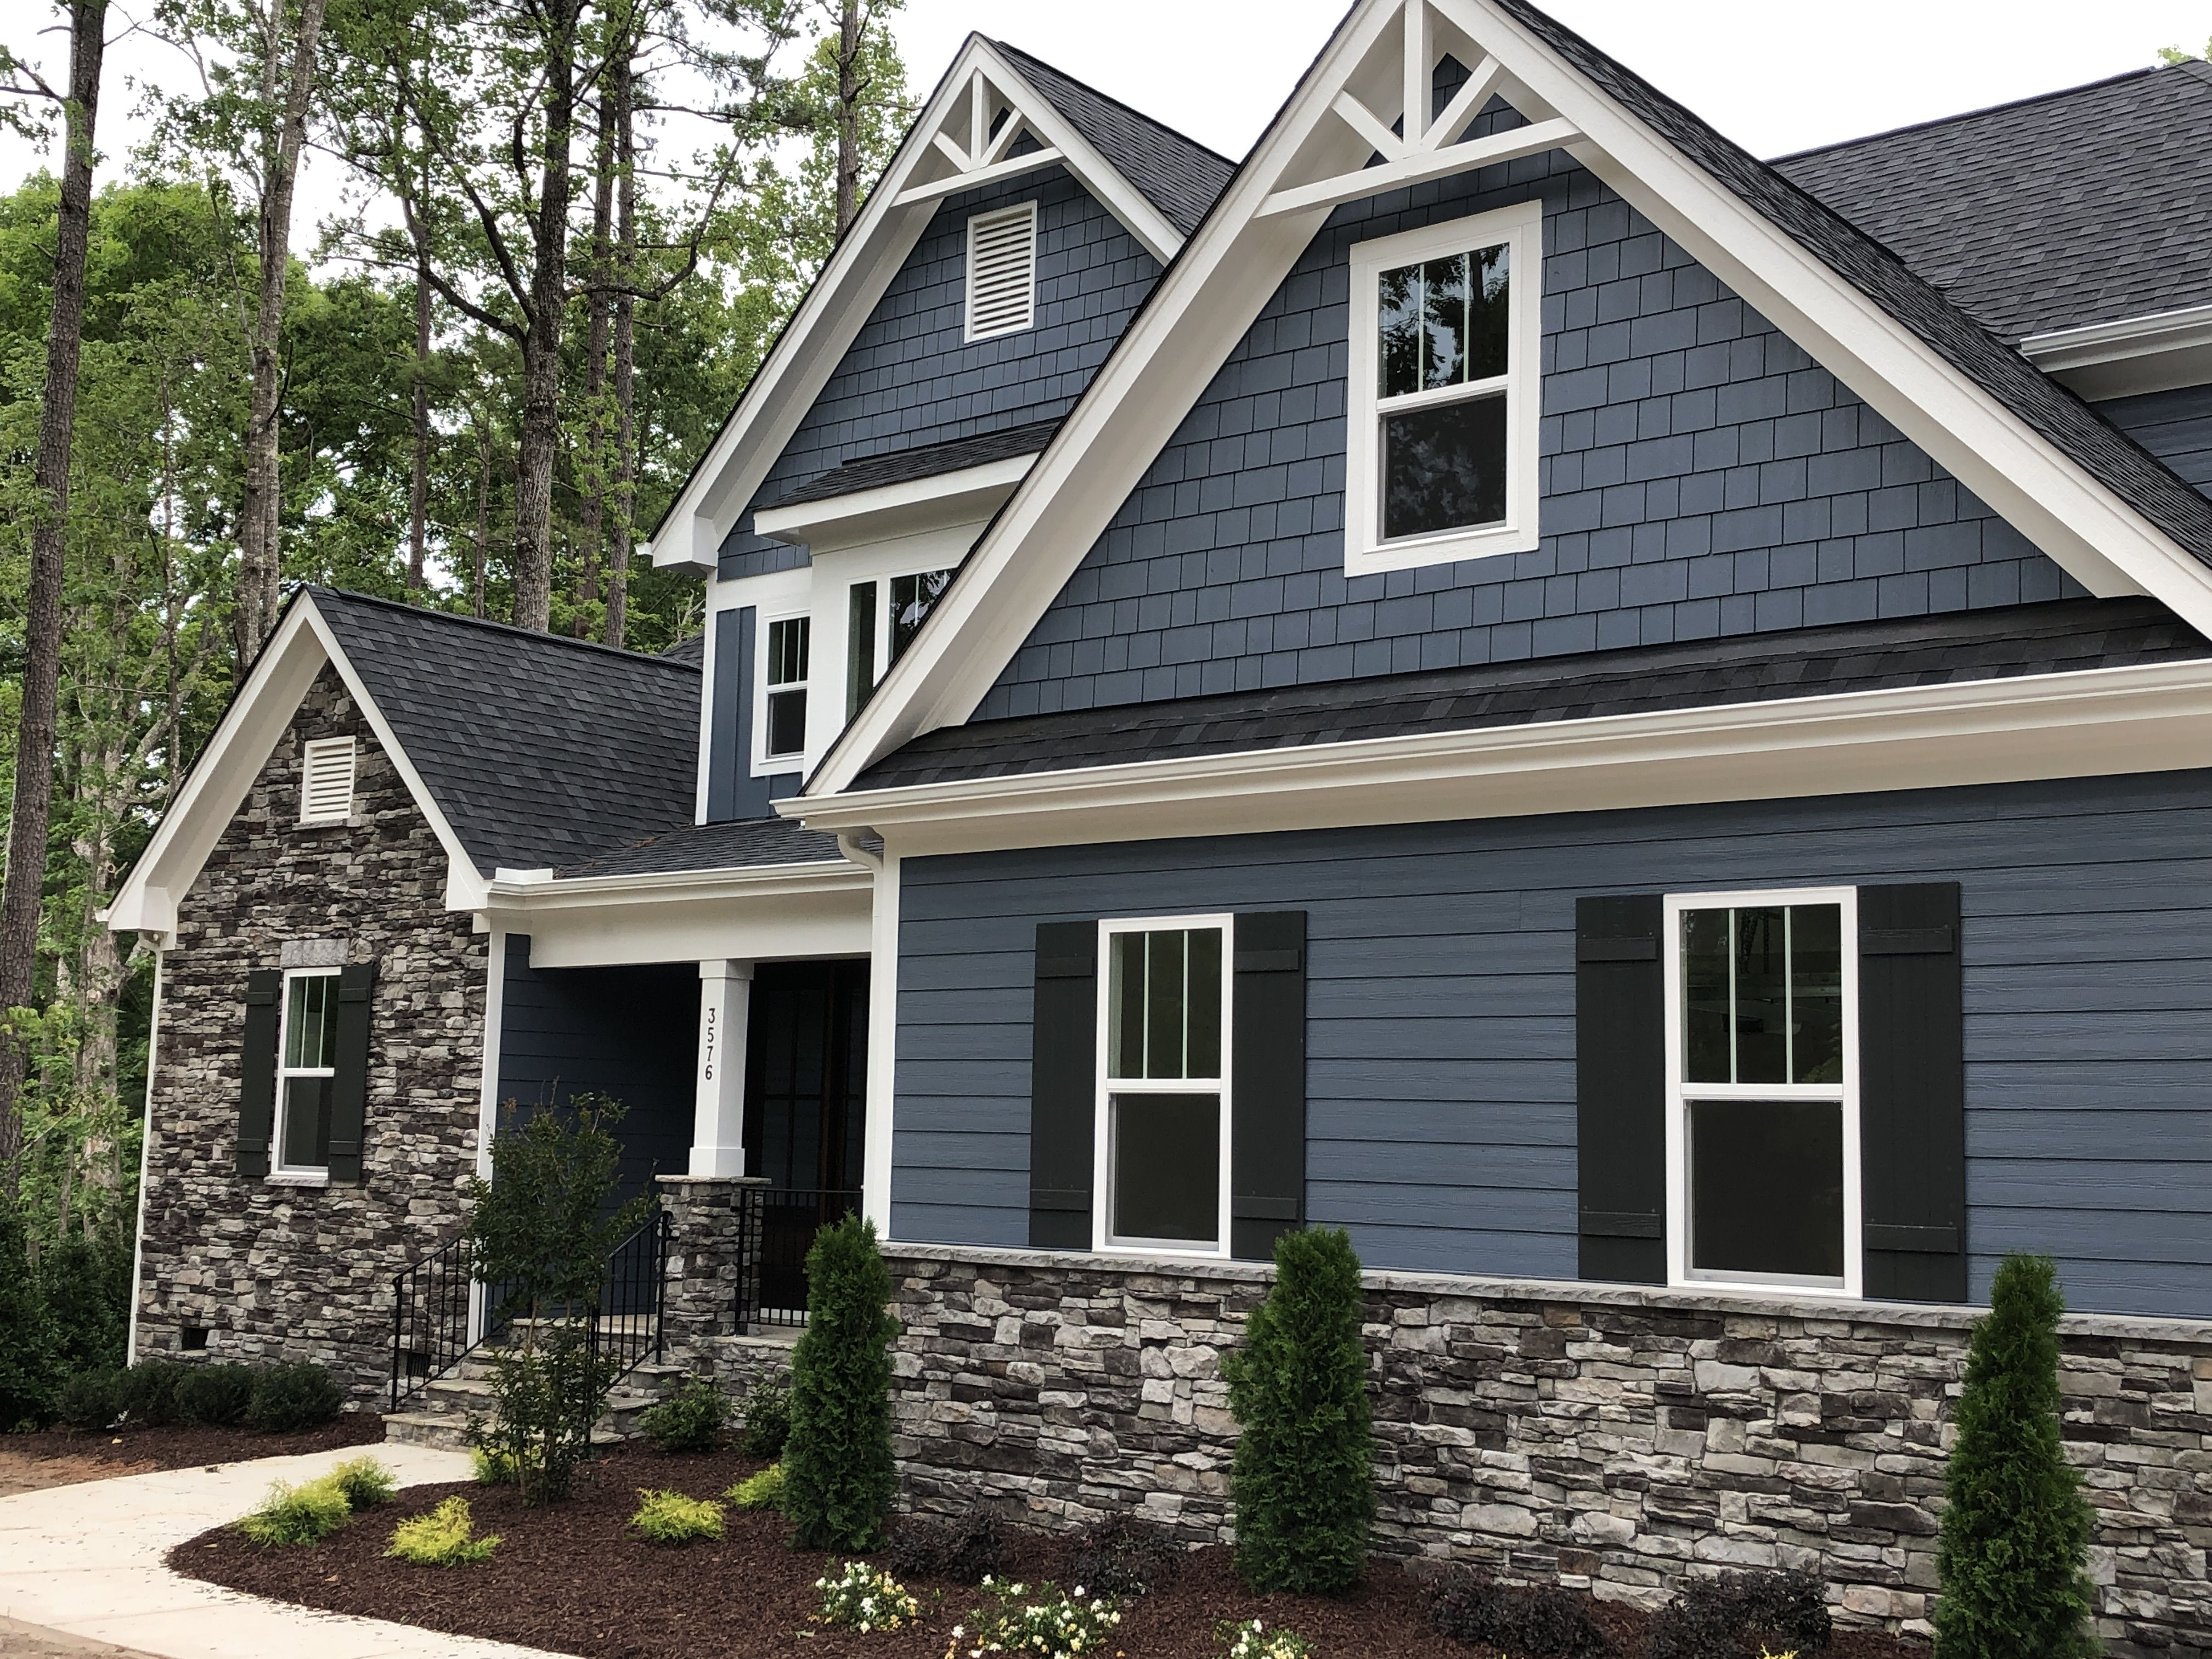 Blue Grey Exterior Paint Sherwin Williams Granite Peak In 2020 House Exterior Blue Outside House Colors Outside House Paint,Best Artificial Christmas Trees